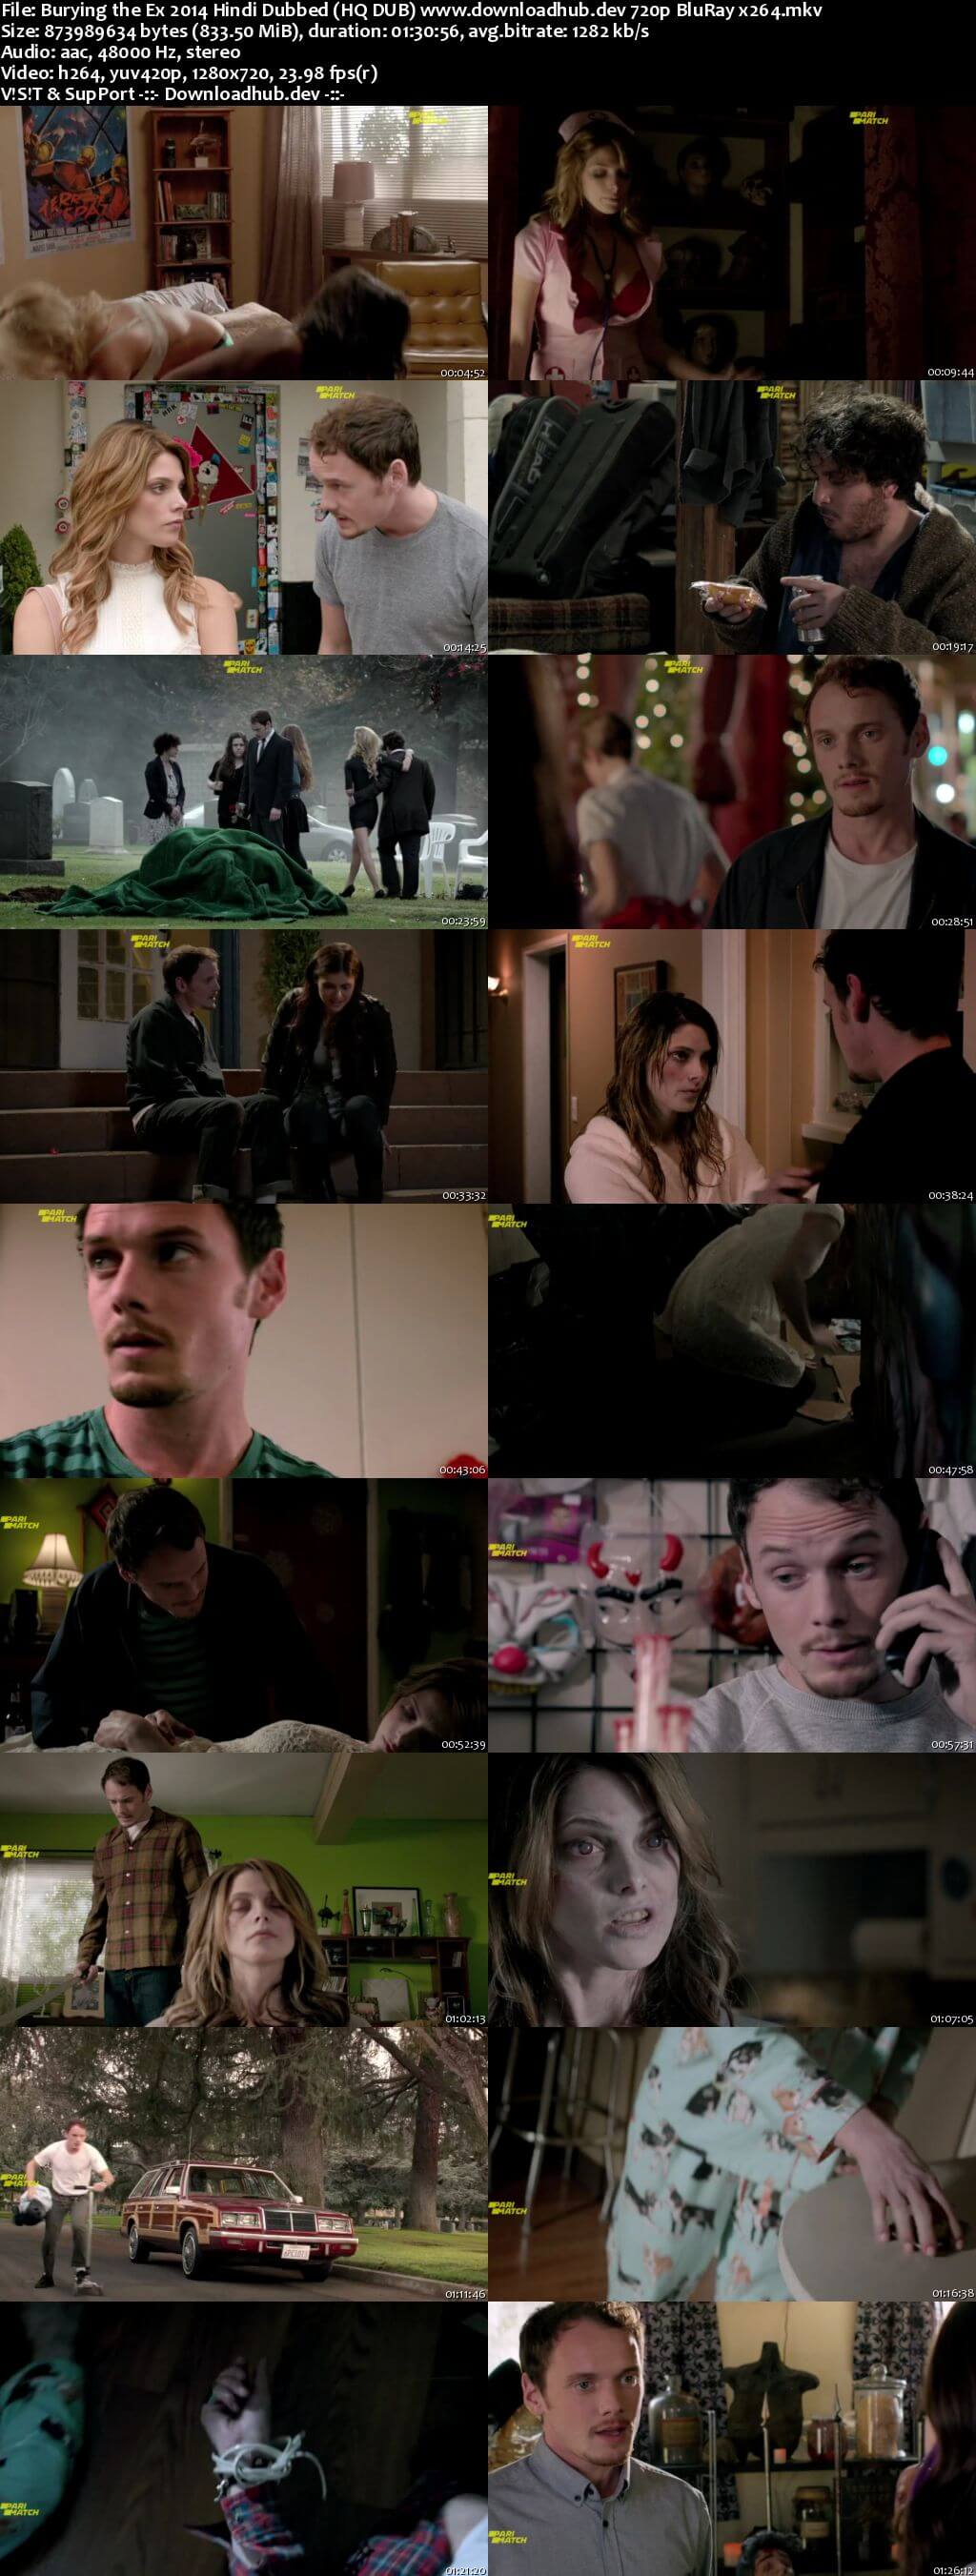 Burying the Ex 2014 Hindi (HQ DUB) 720p BluRay x264